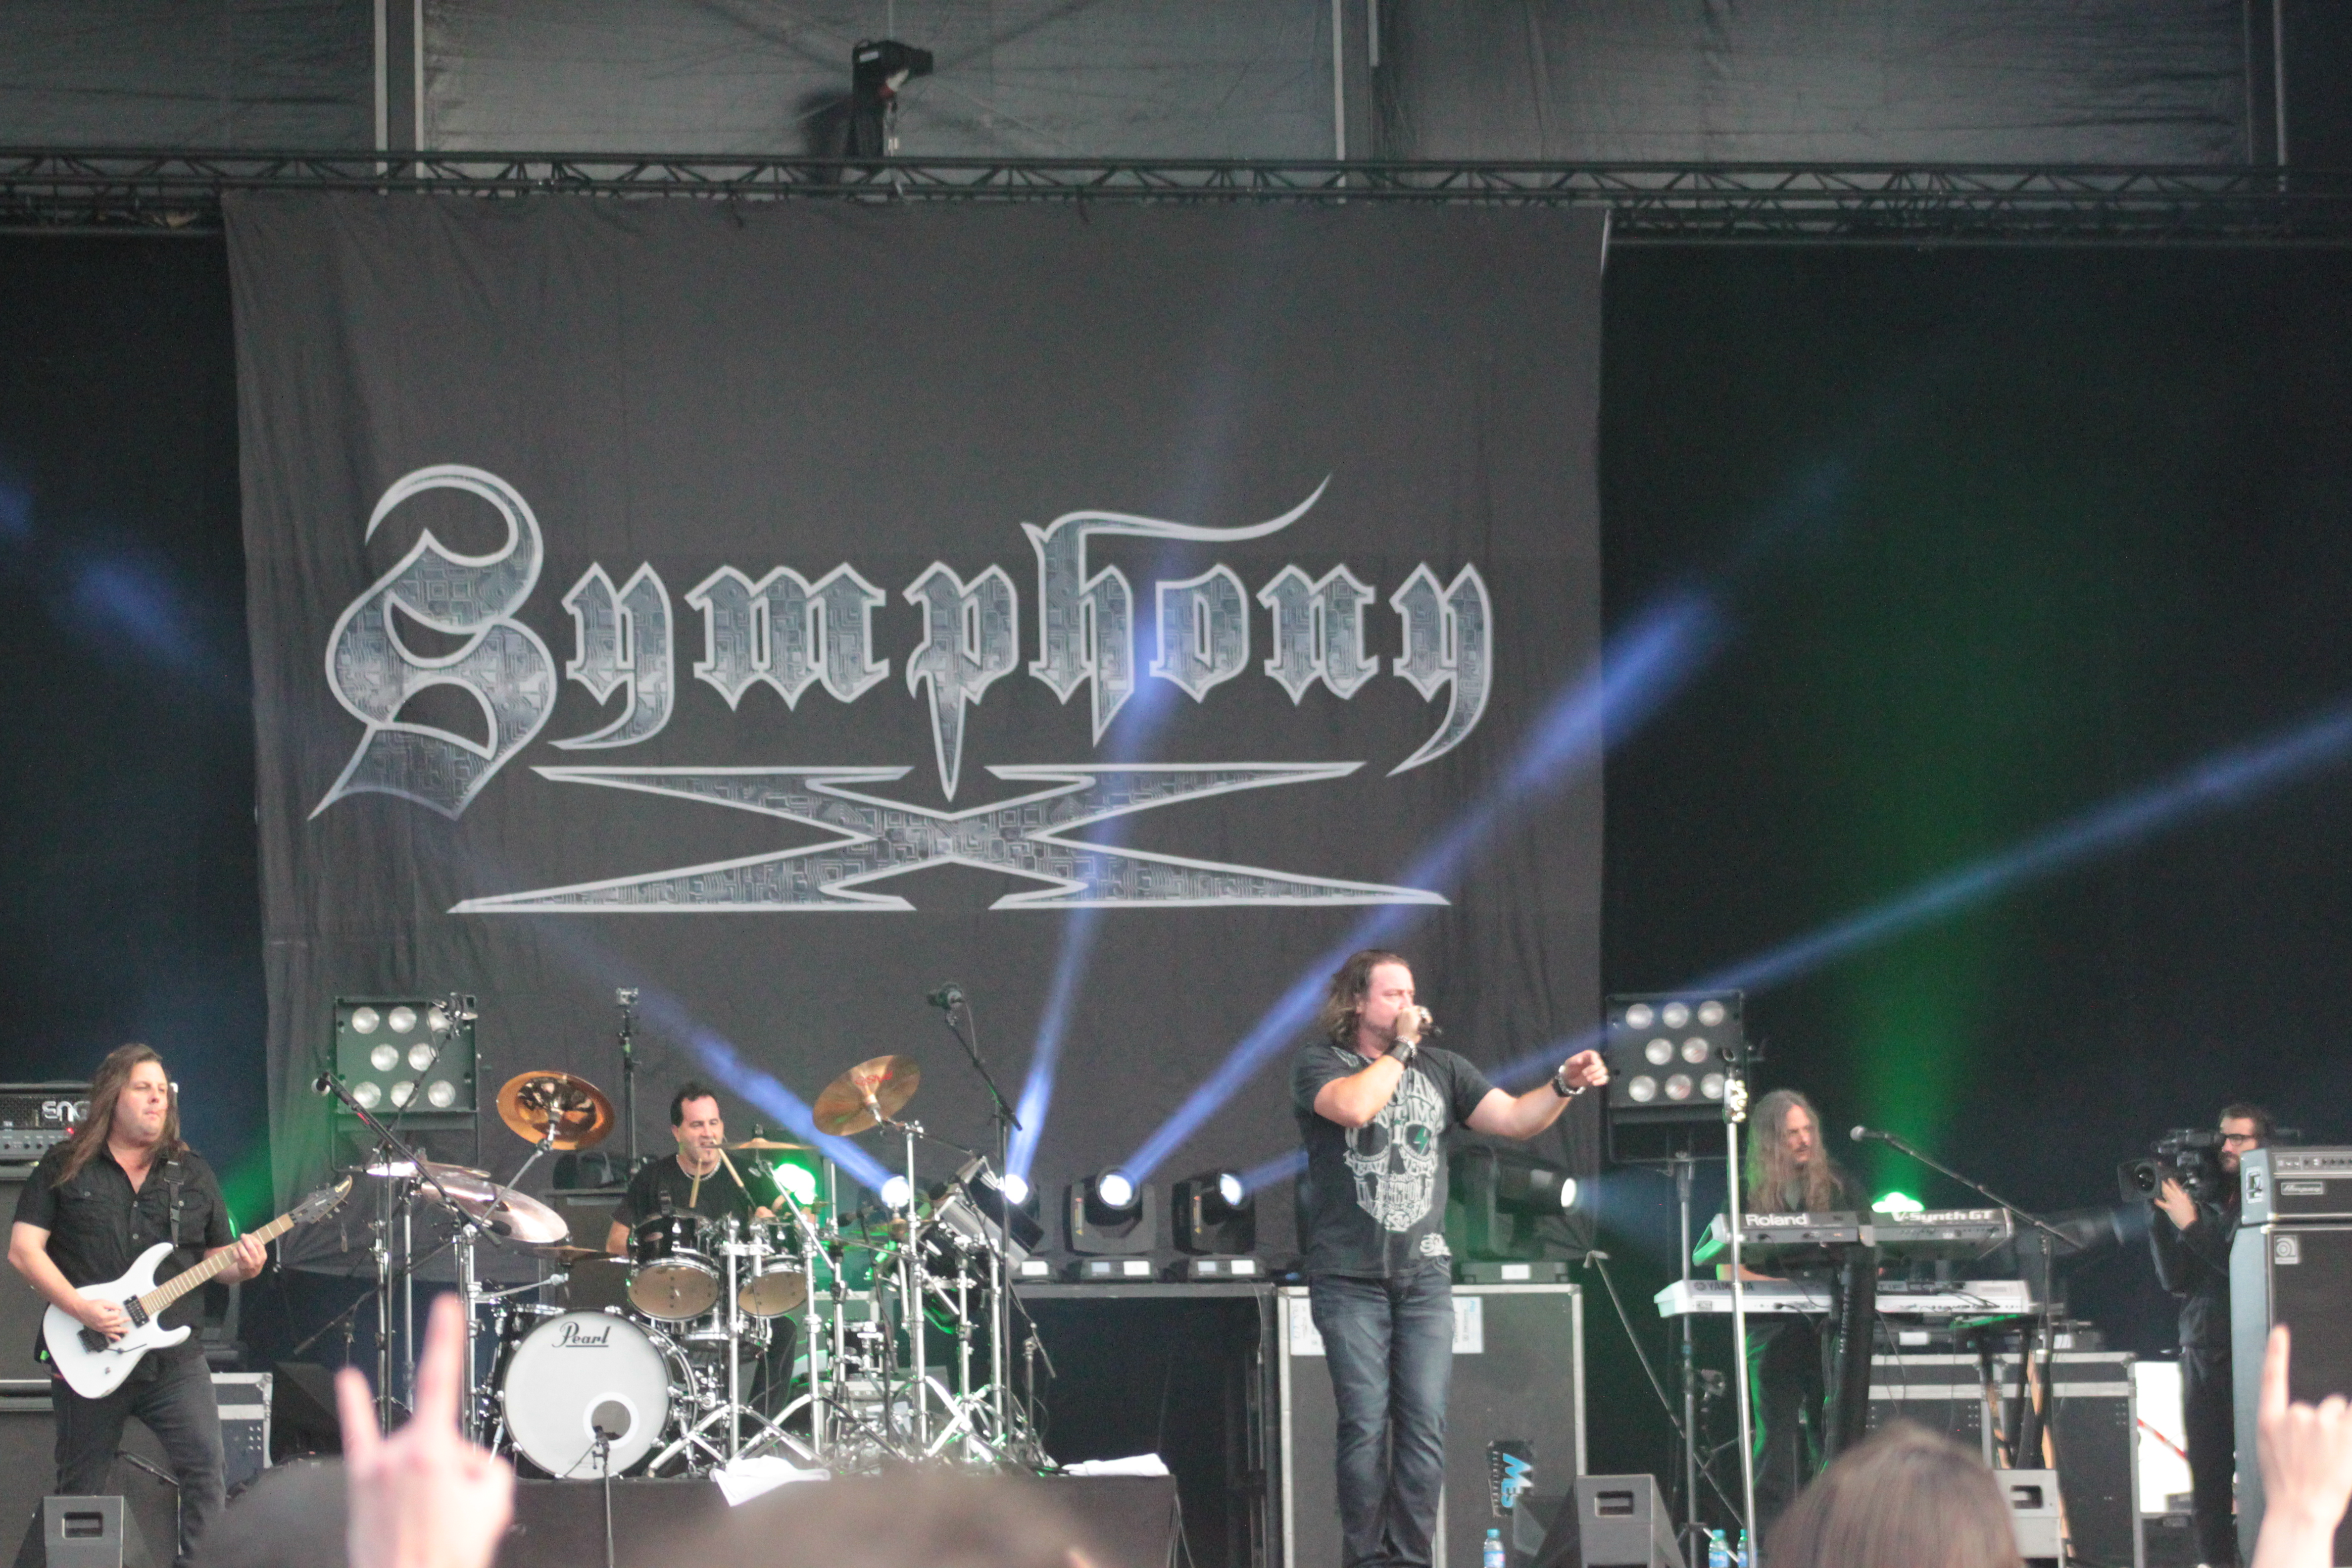 Symphony x domination tabs question